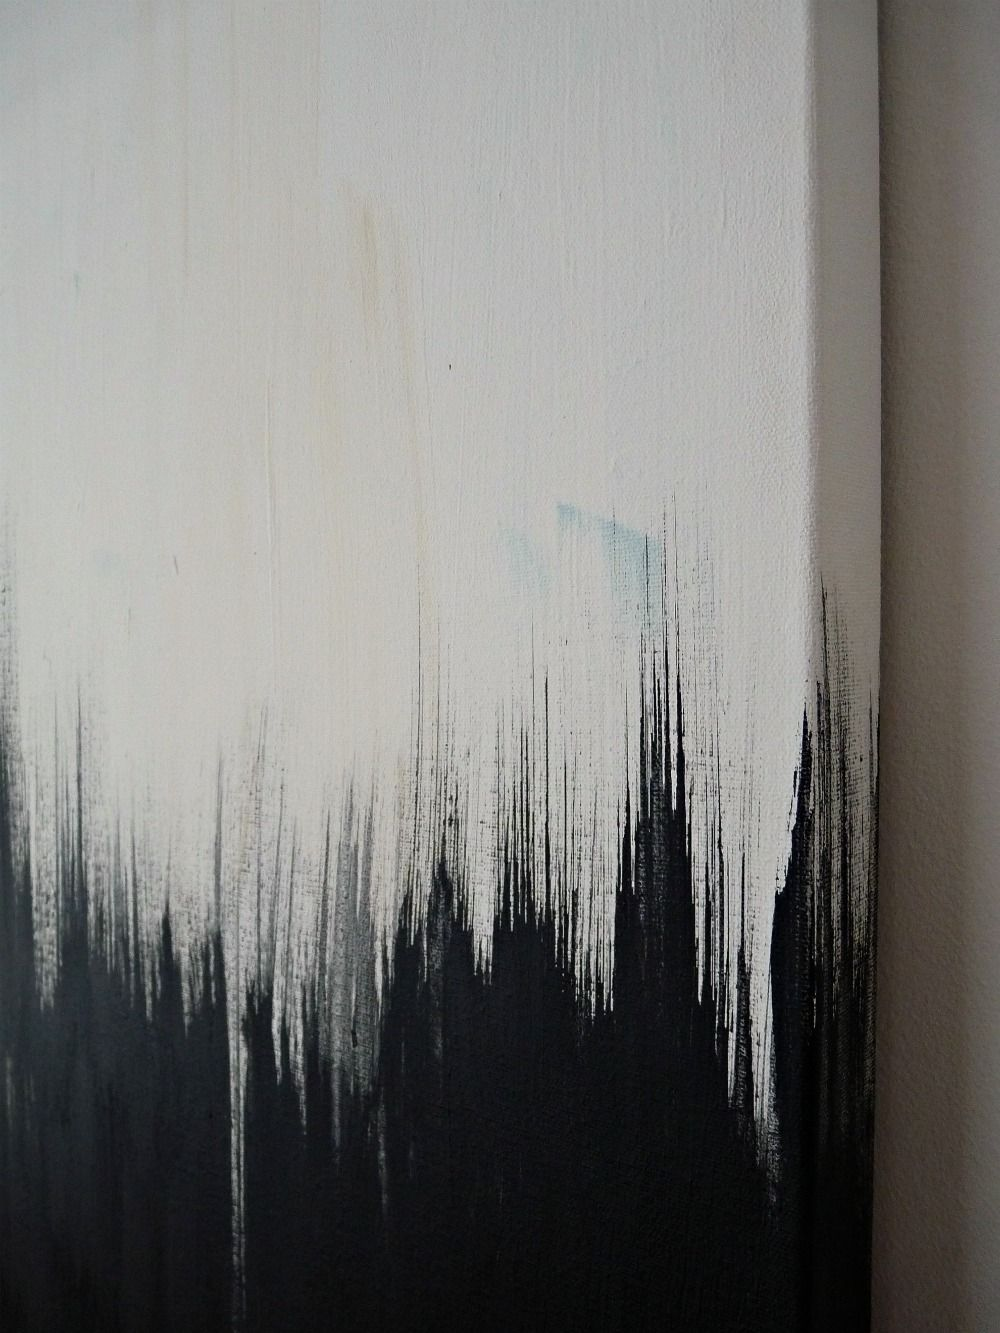 Simple But Striking, Black   White DIY Abstract Painting | Diy art ... for Abstract Paintings Black And White And Blue  143gtk